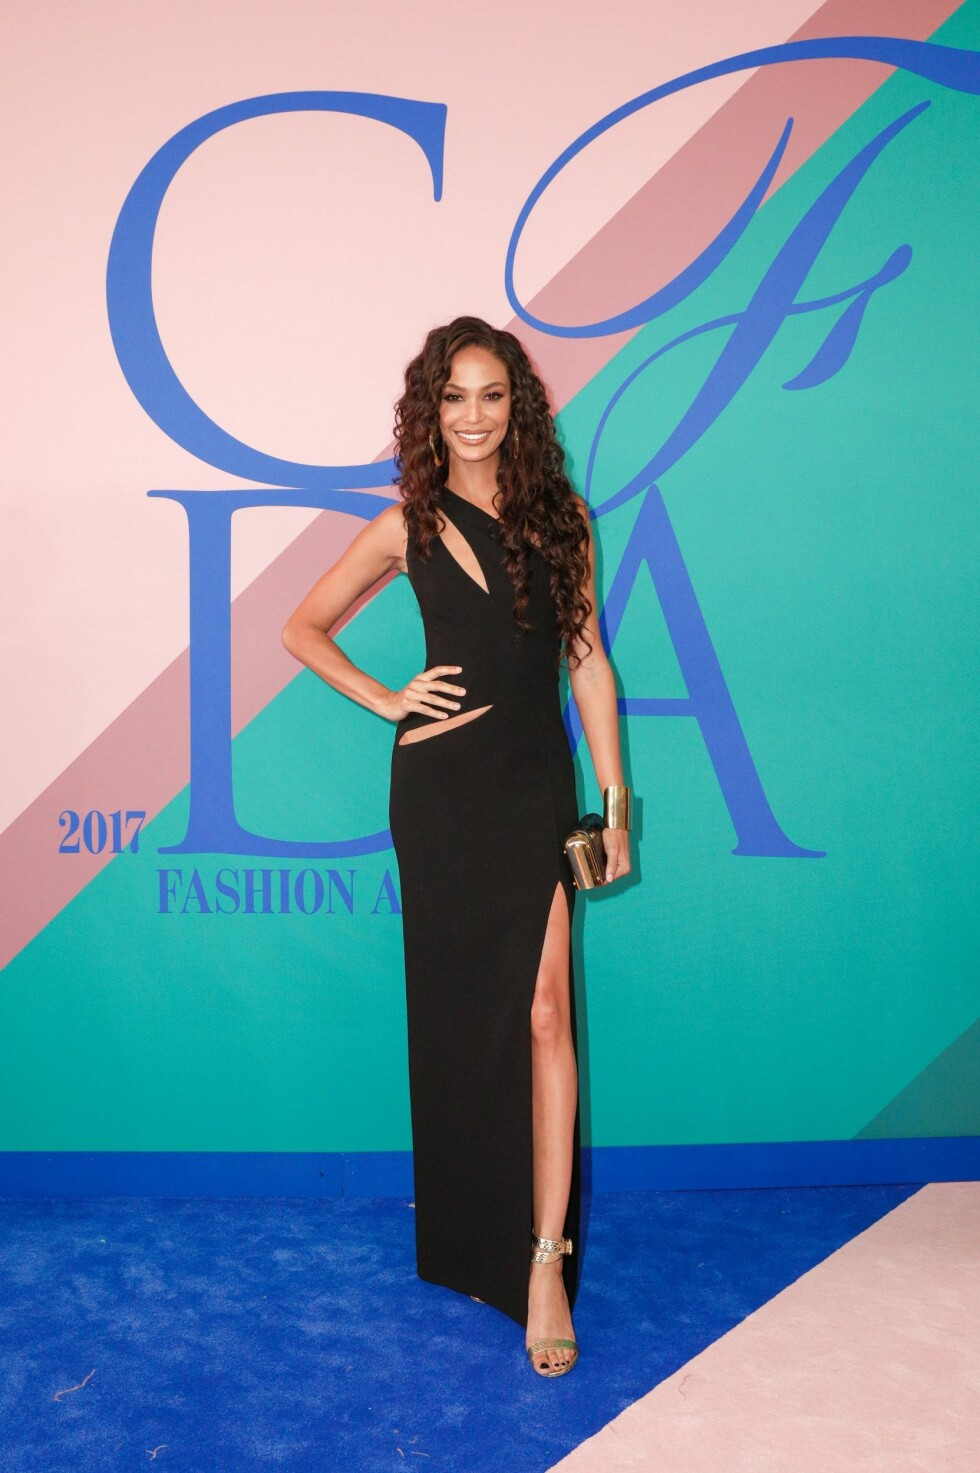 CFDA FASHION AWARDS: Joan Smalls Foto: Shutterstock